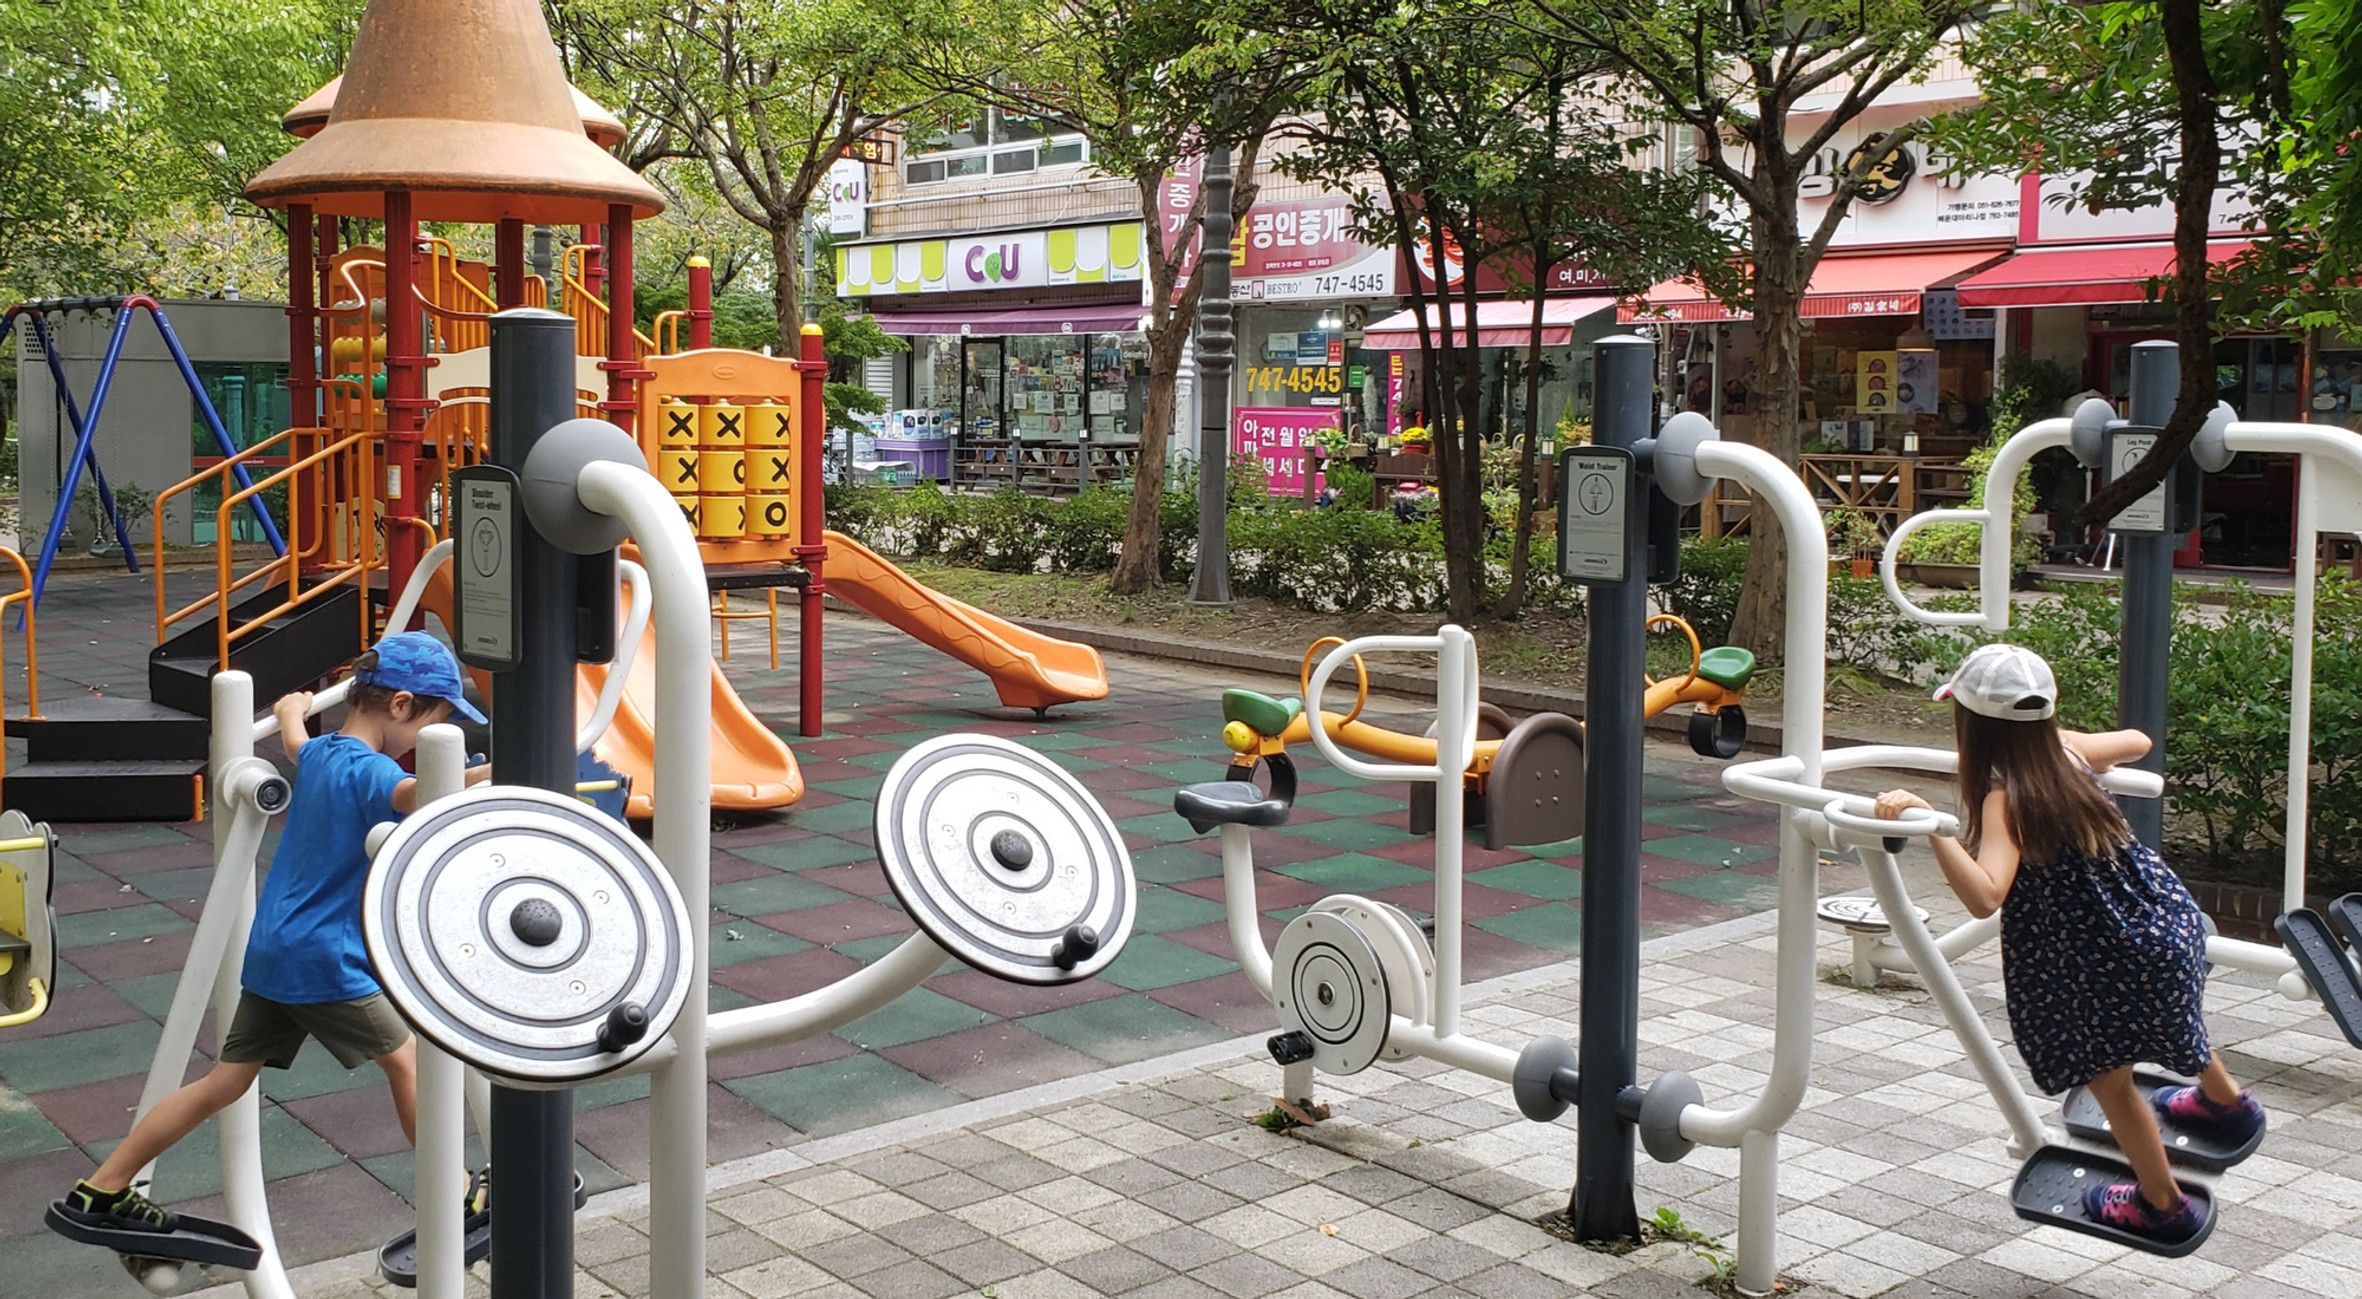 Exercise machines by playgrounds